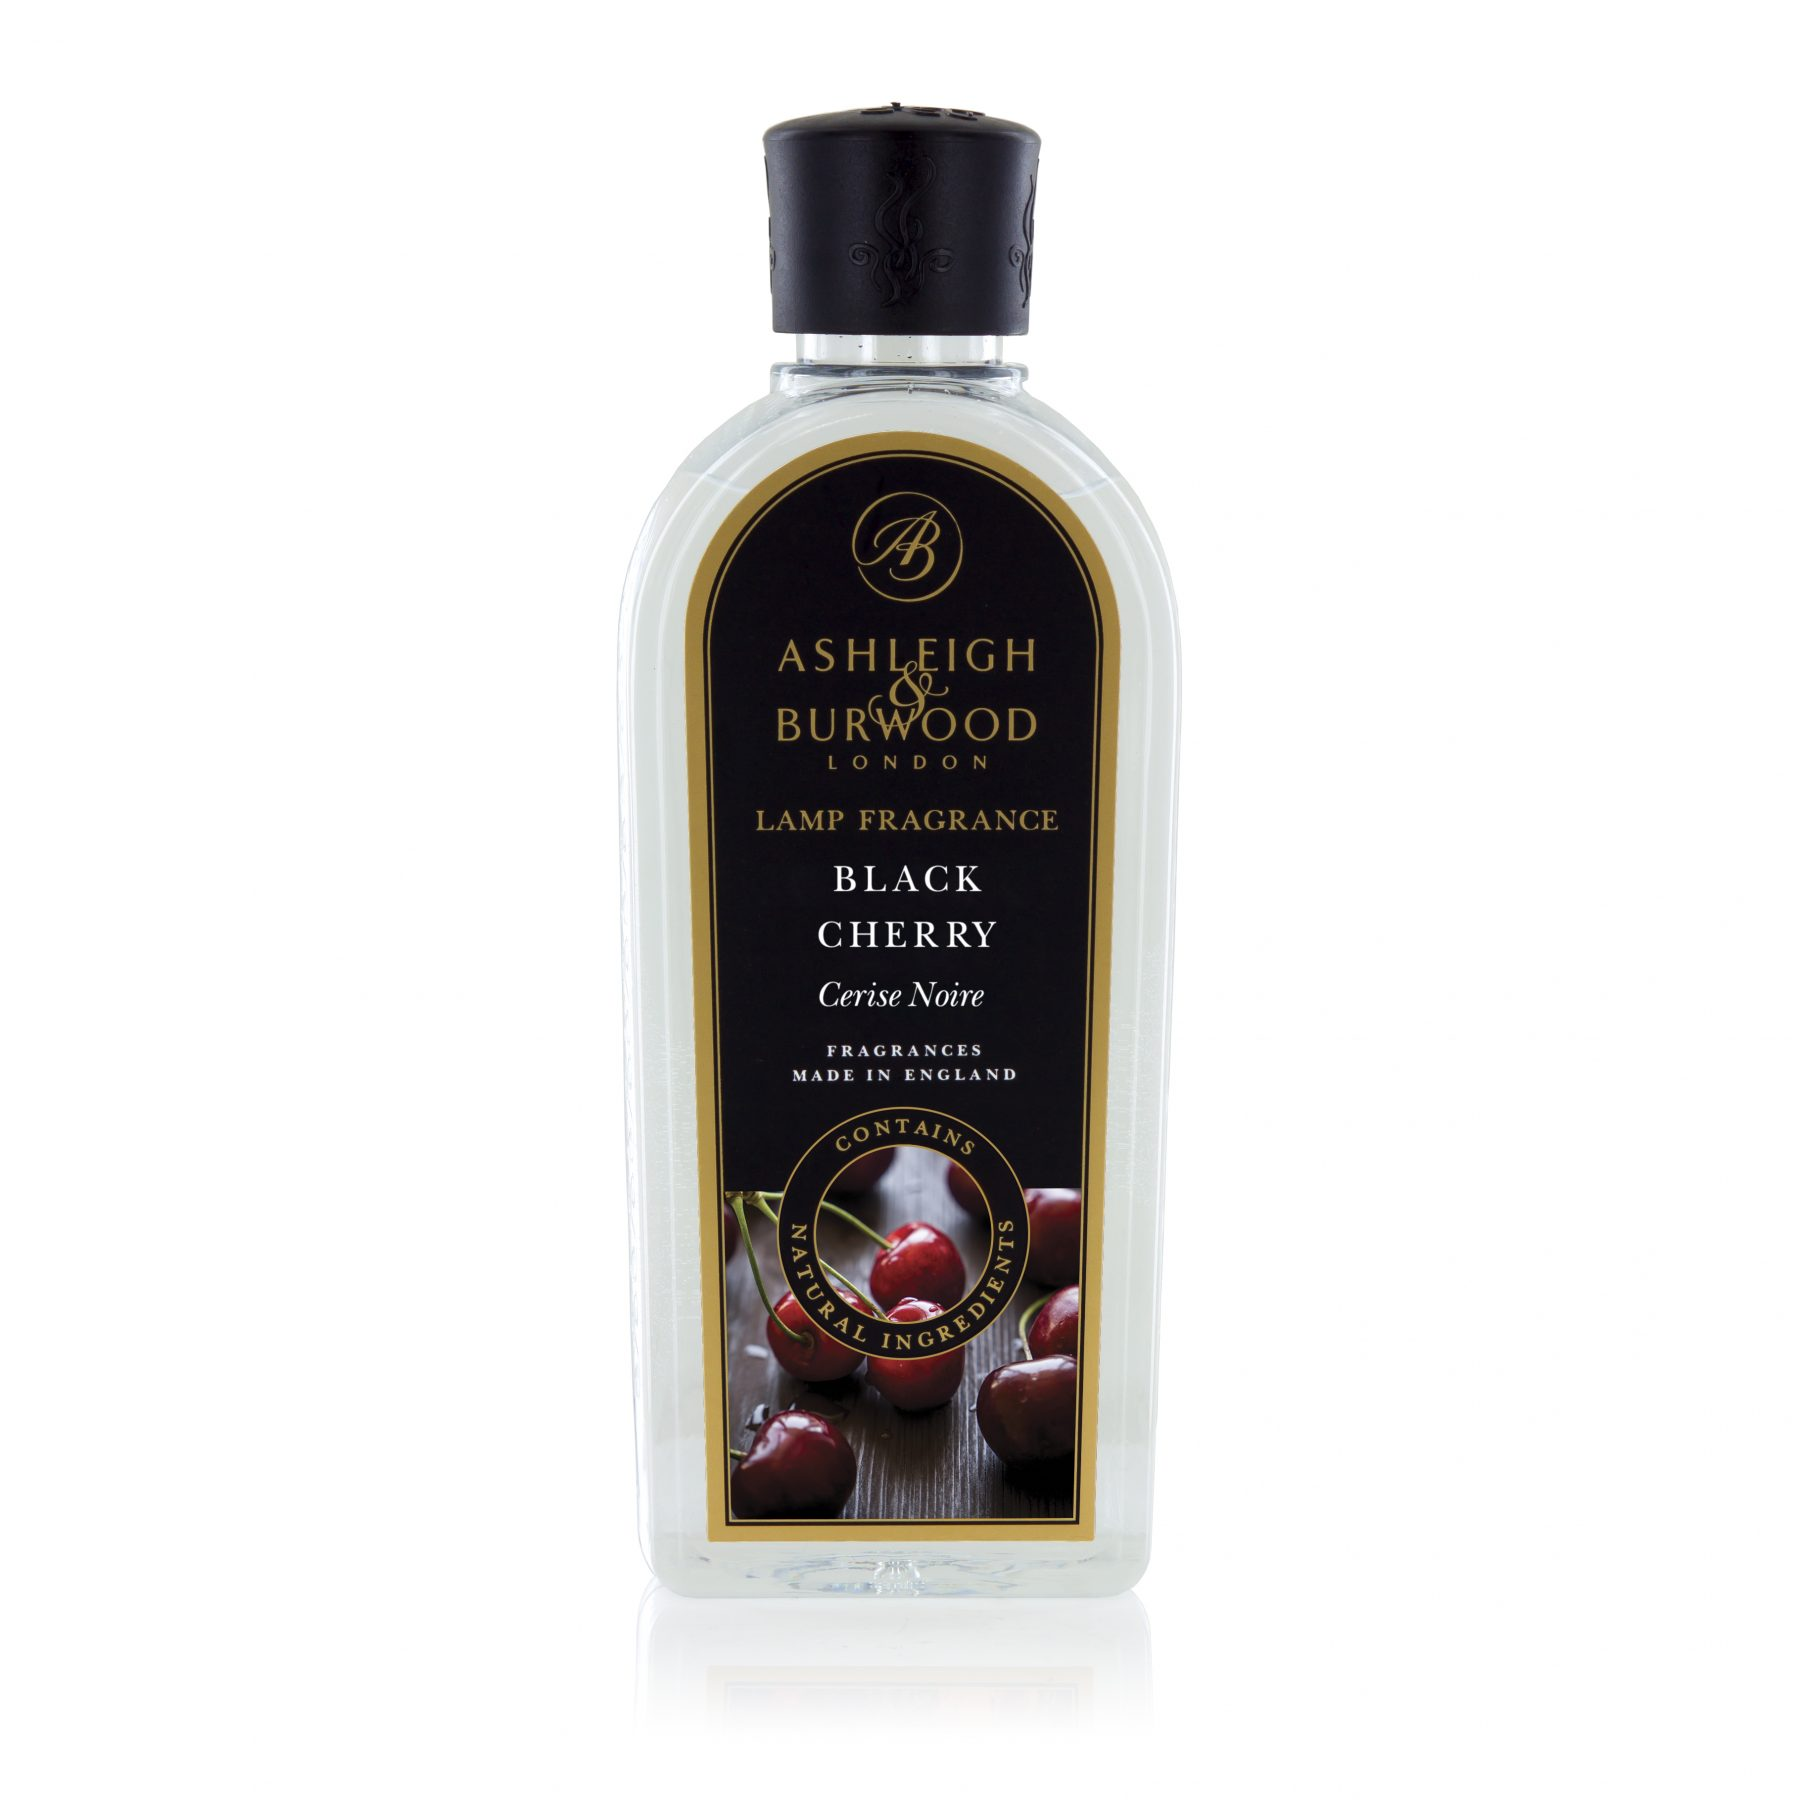 Premium Fragrance Lamp Fragrance 500ml – Black Cherry